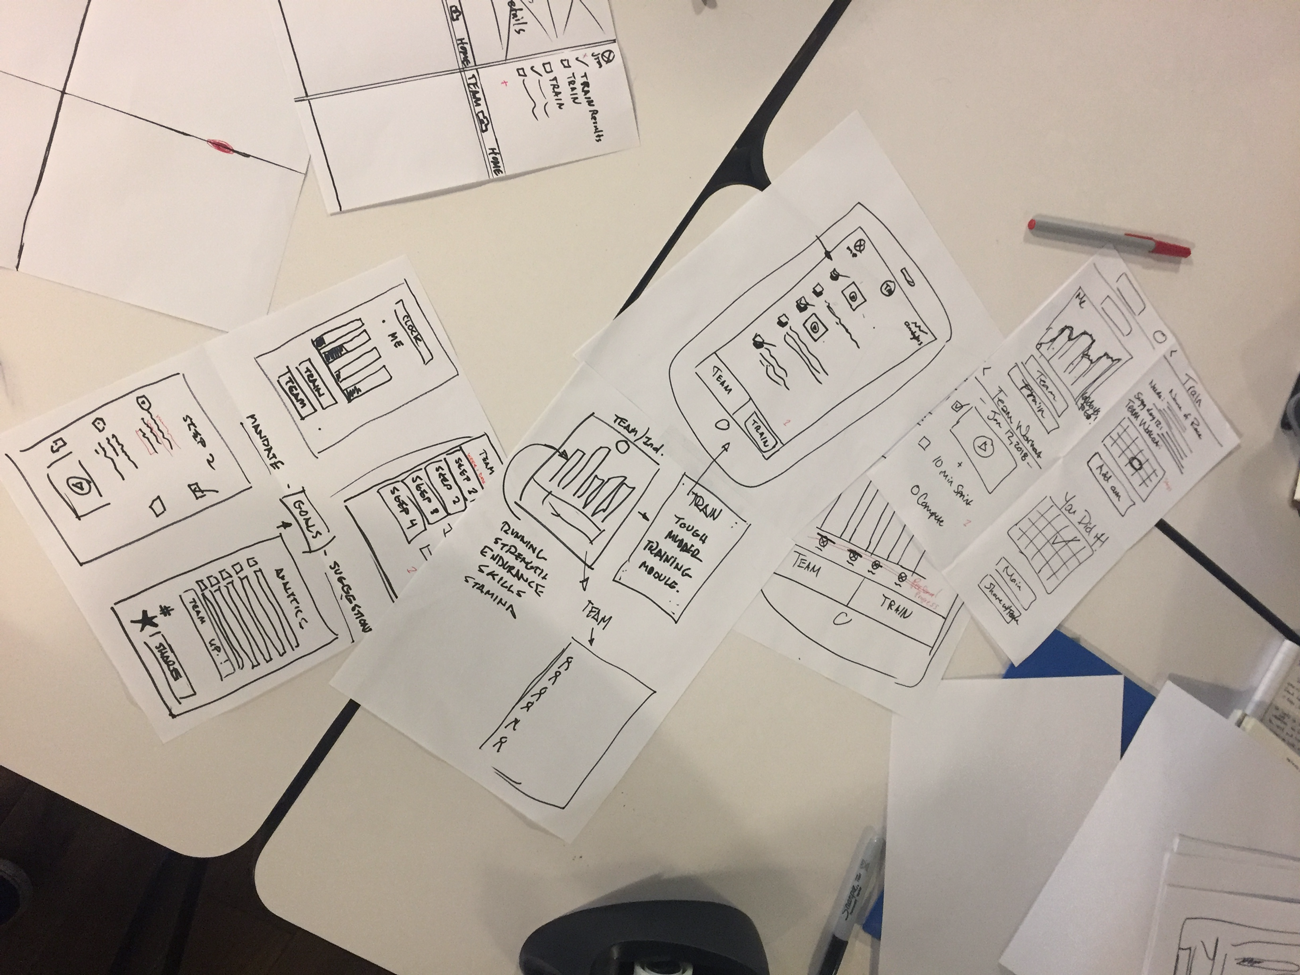 UX Design design studio sketches laid out on a table